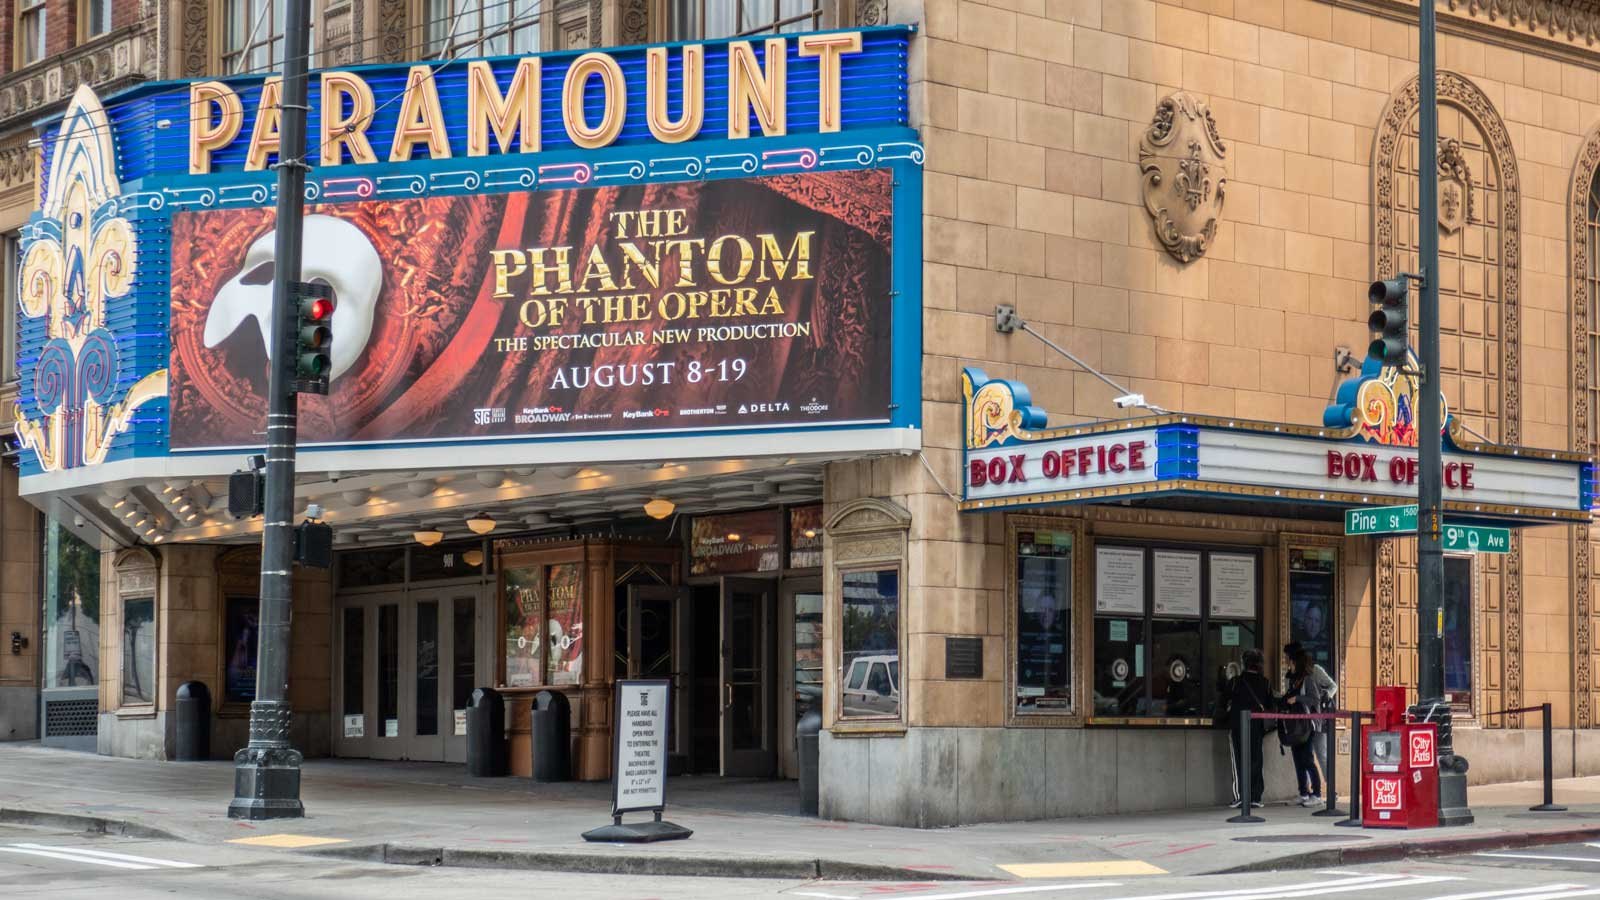 The Paramount Theatre Seattle